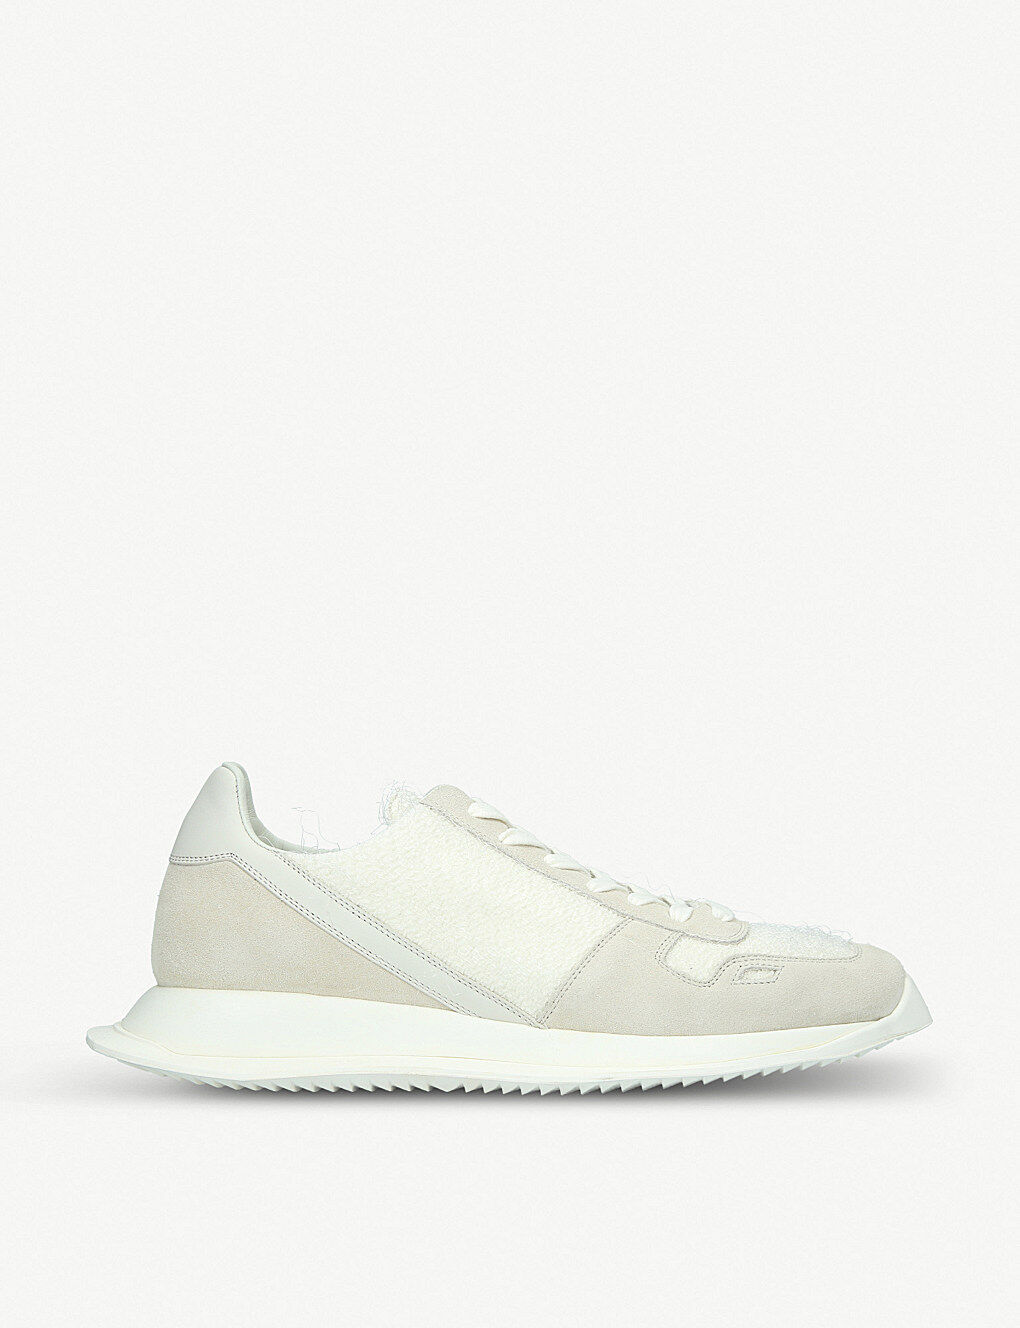 BNIB RICK OWENS Off White Italian Made Suede Textile Trainers Sneakers UK7